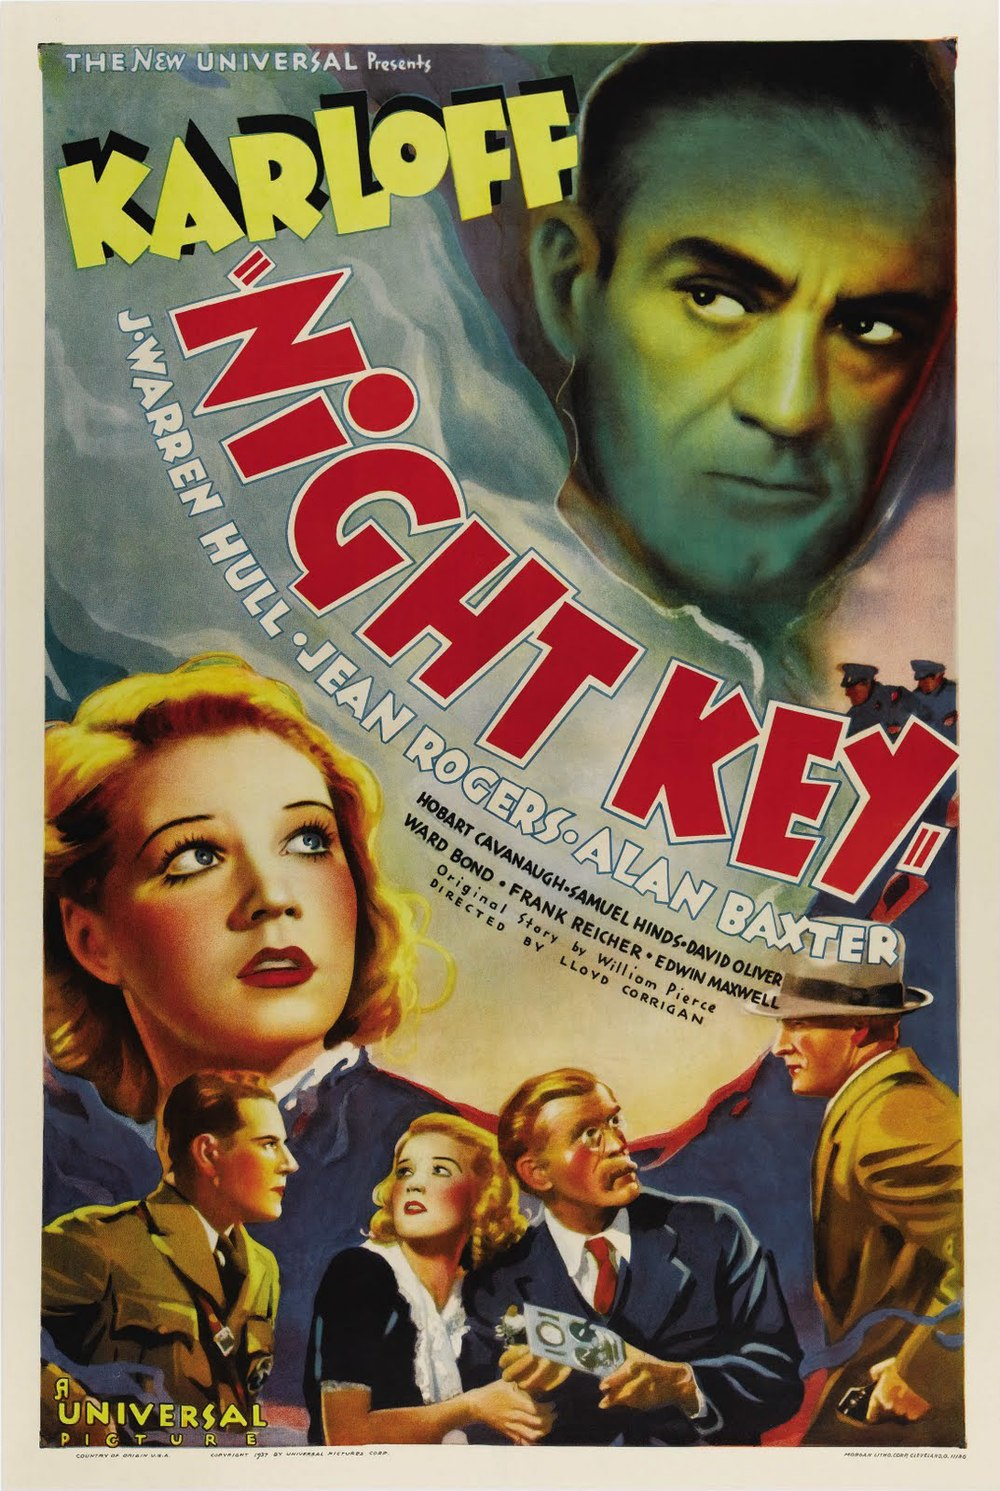 night_key_poster_02.jpg